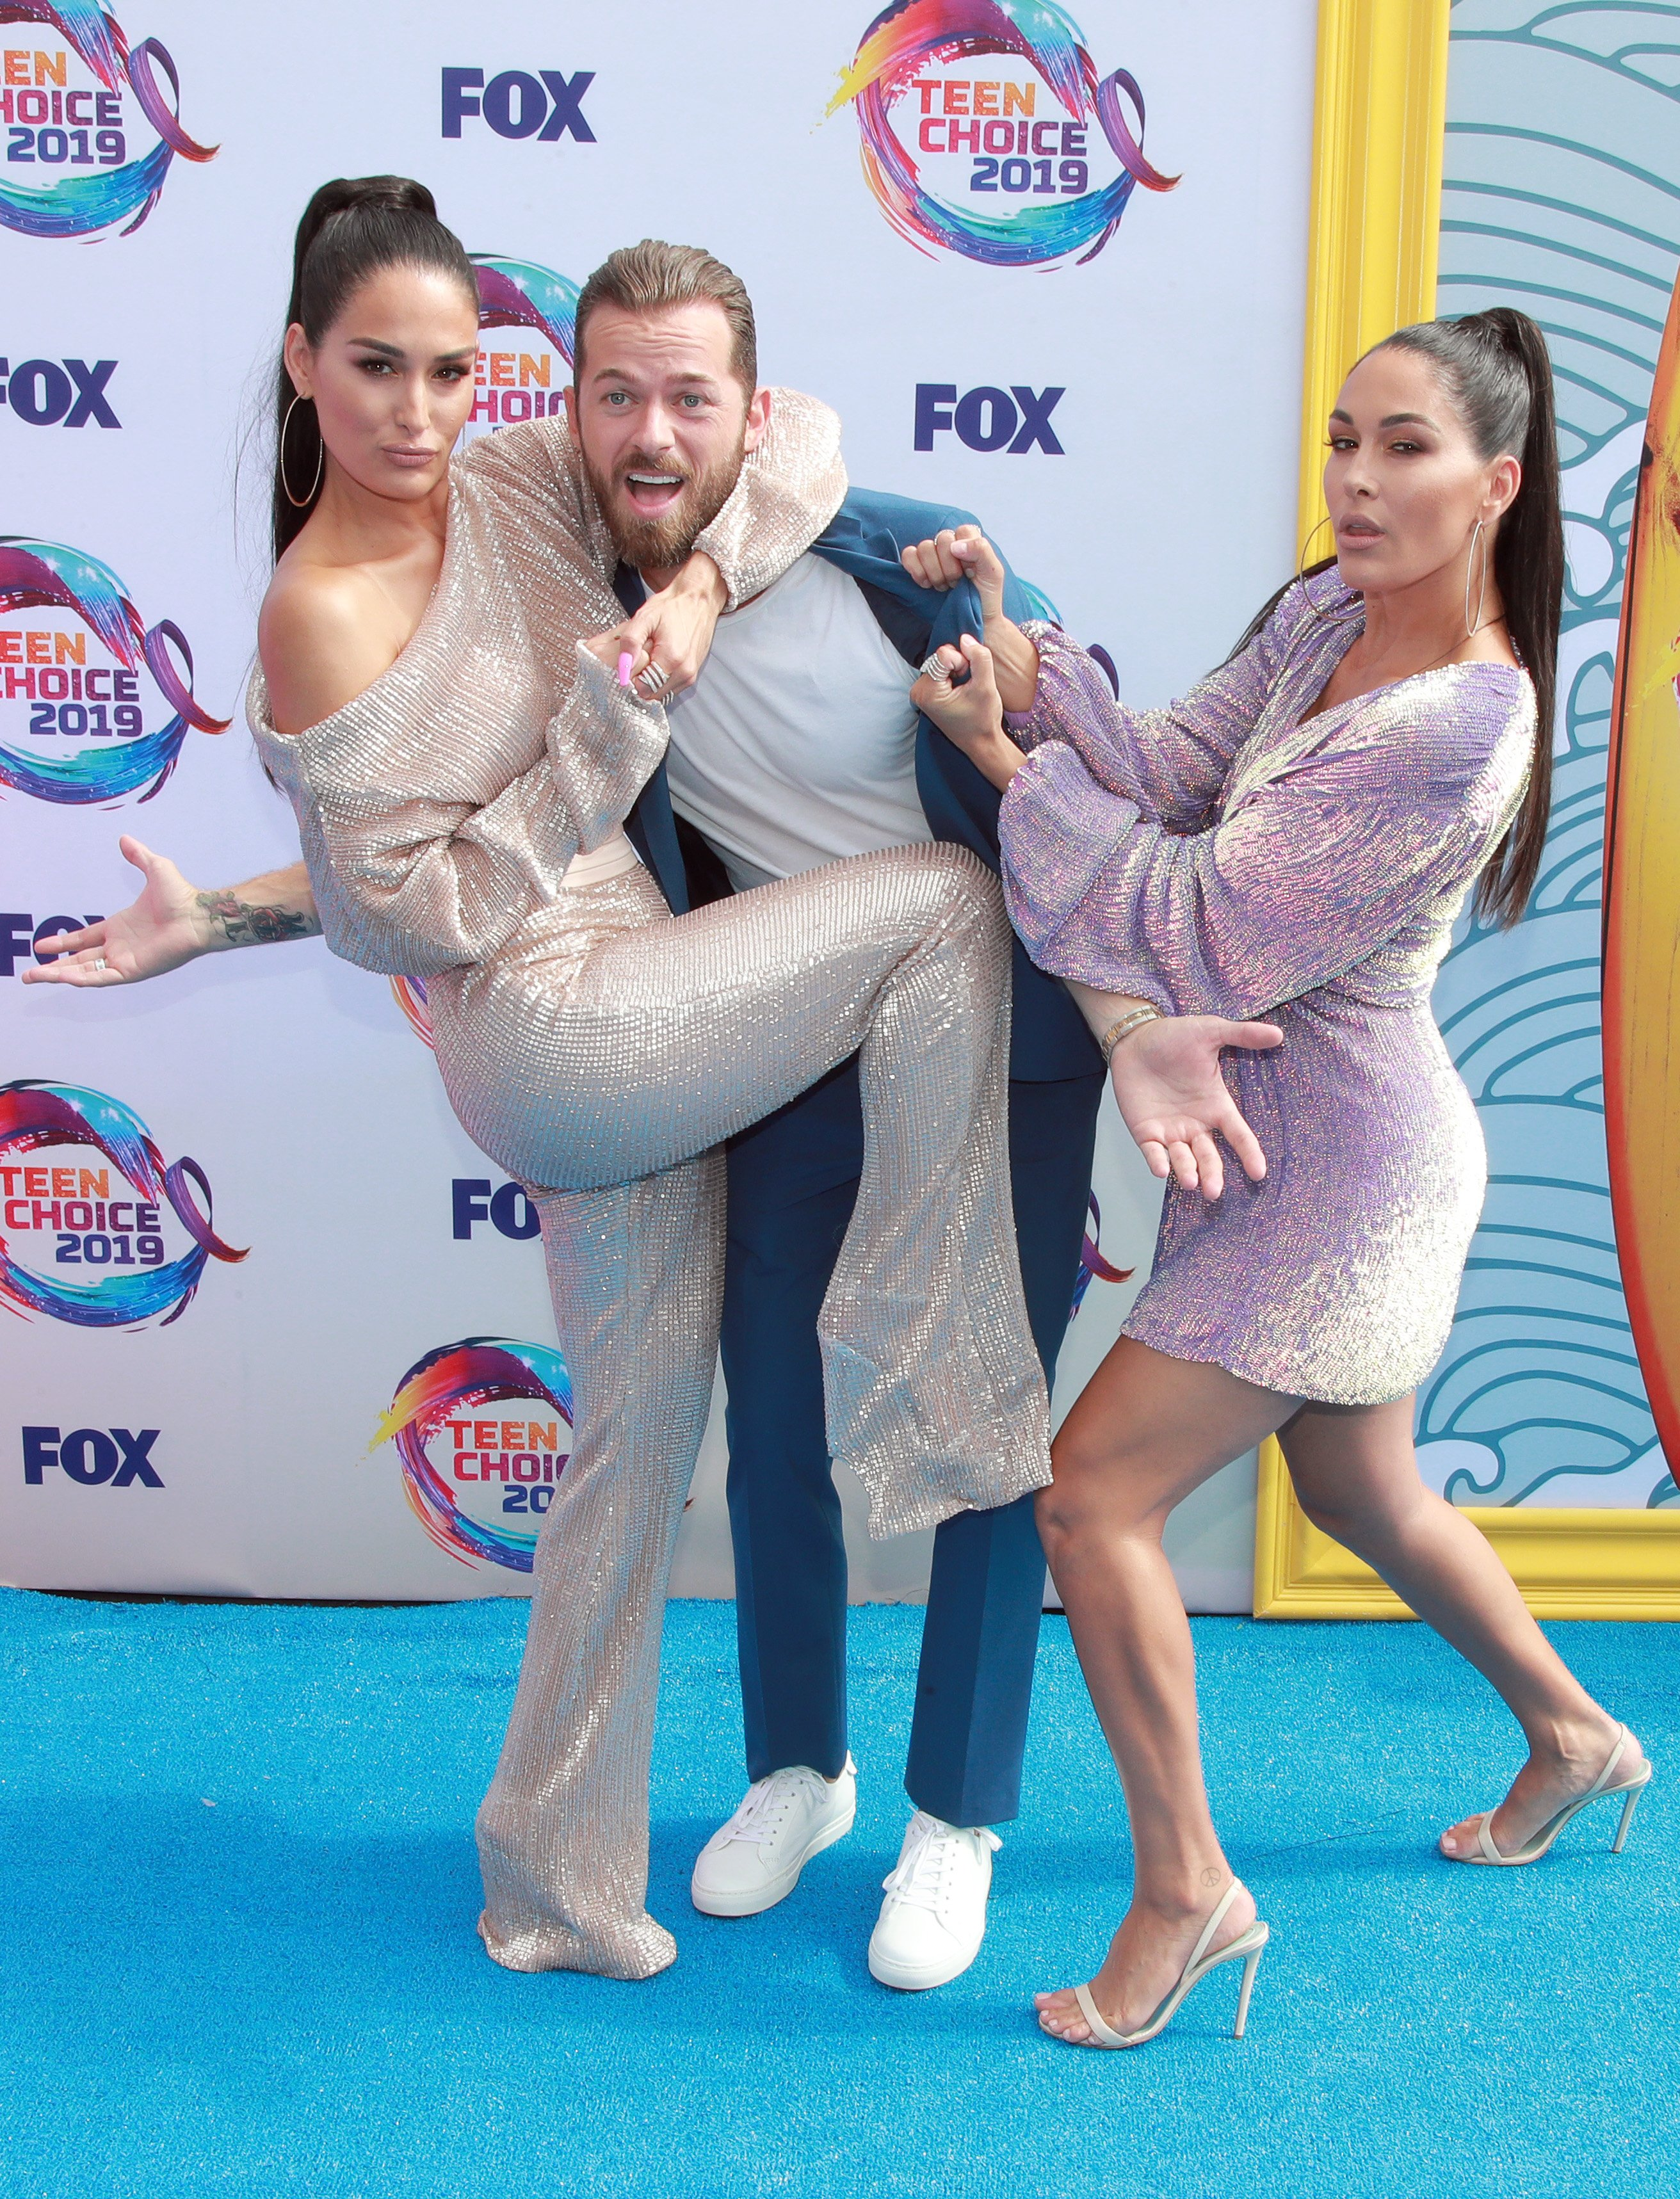 Nikki Bella, Artem Chigvintsev, and Brie Bella during 2019 Teen Choice Awards. | Photo: Getty Images